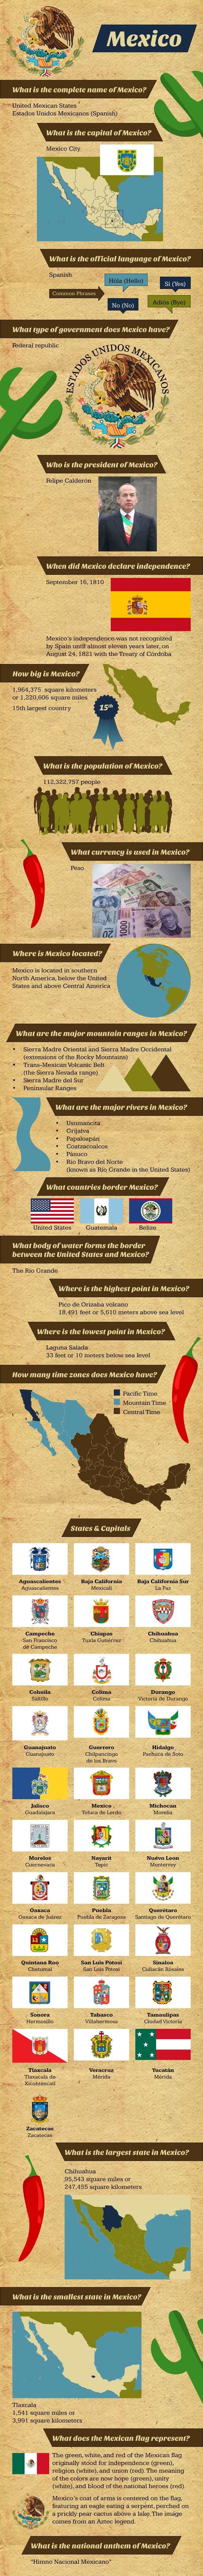 #Infographic of  #Mexico Fast Facts http://www.mapsofworld.com/pages/fast-facts/infographic-of-mexico-fast-facts/